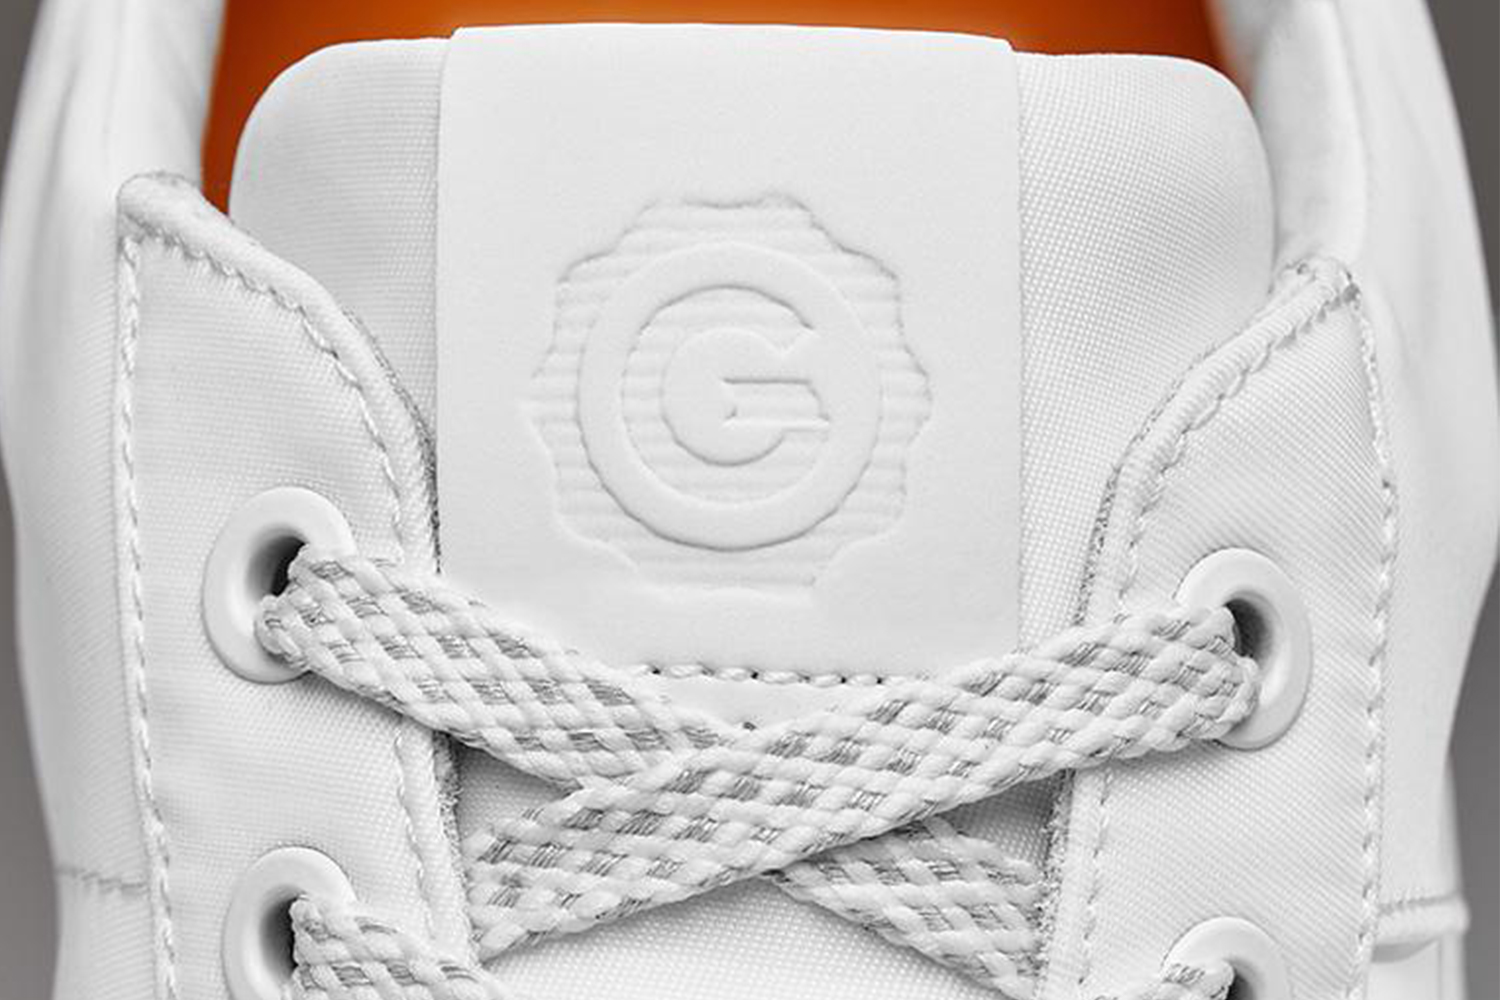 ecc8da62 Deal: Italian Sneakers Are Up to $90 Off at the Greats Clearance Sale